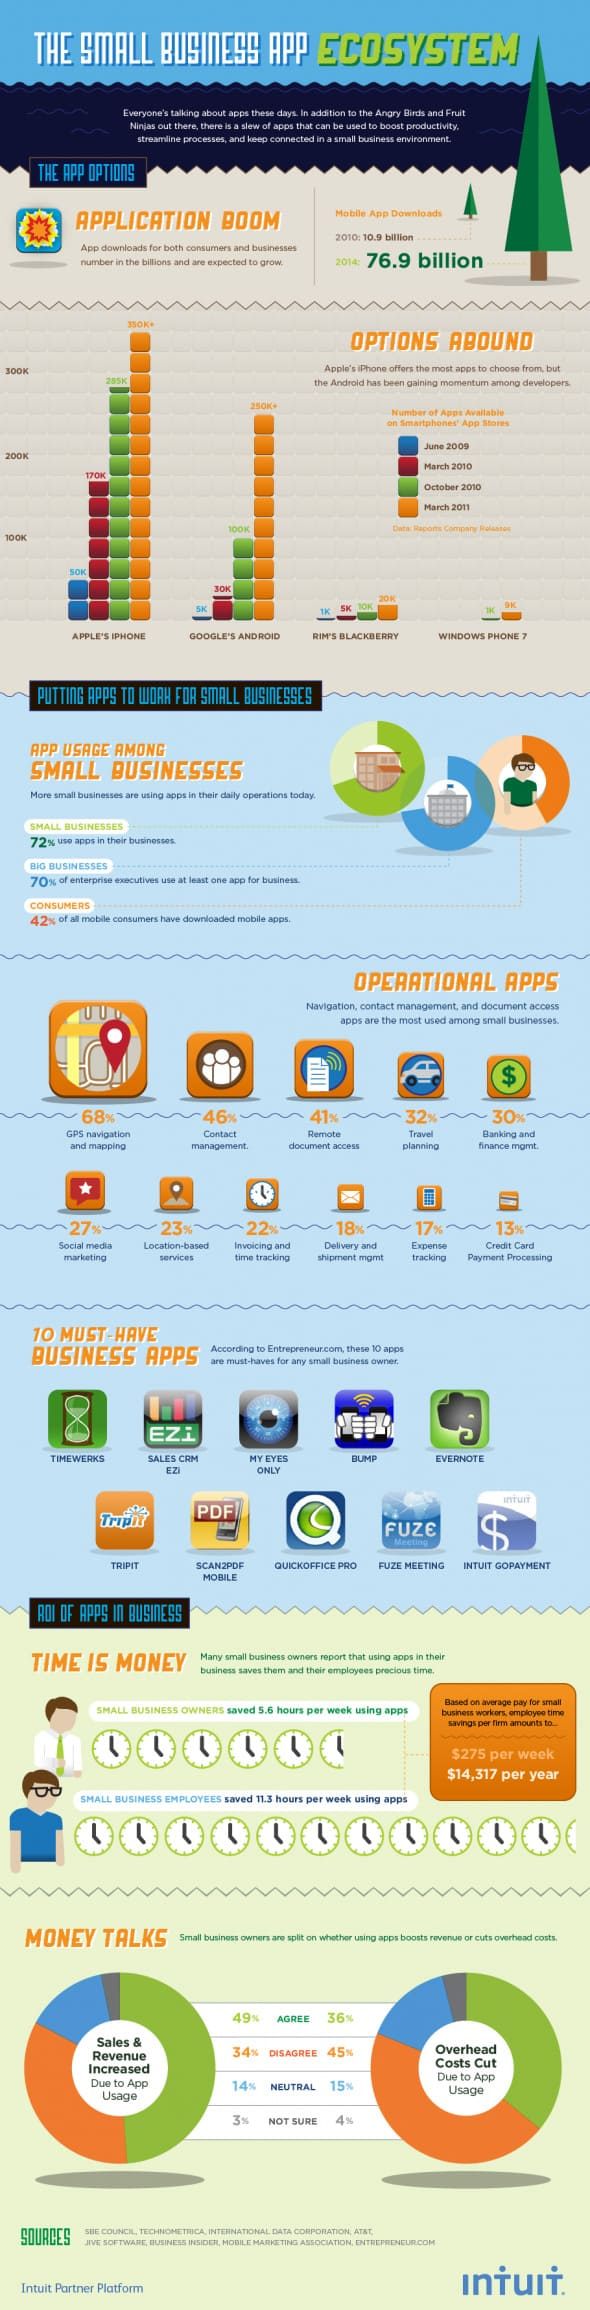 Intuit our small business appnation infographic